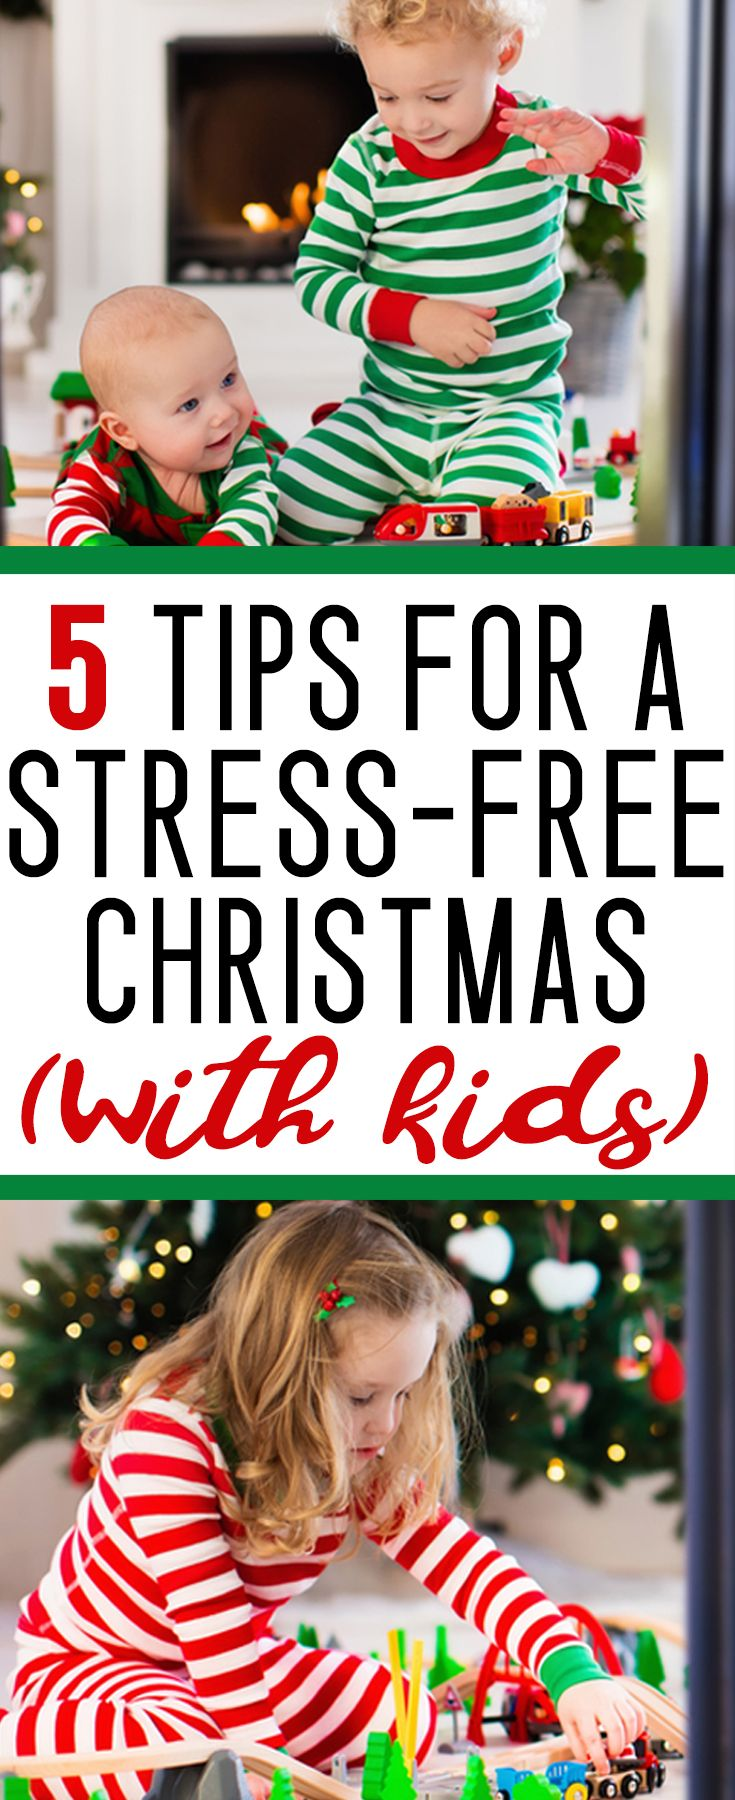 Surviving Christmas with kids (and keeping your sanity!)